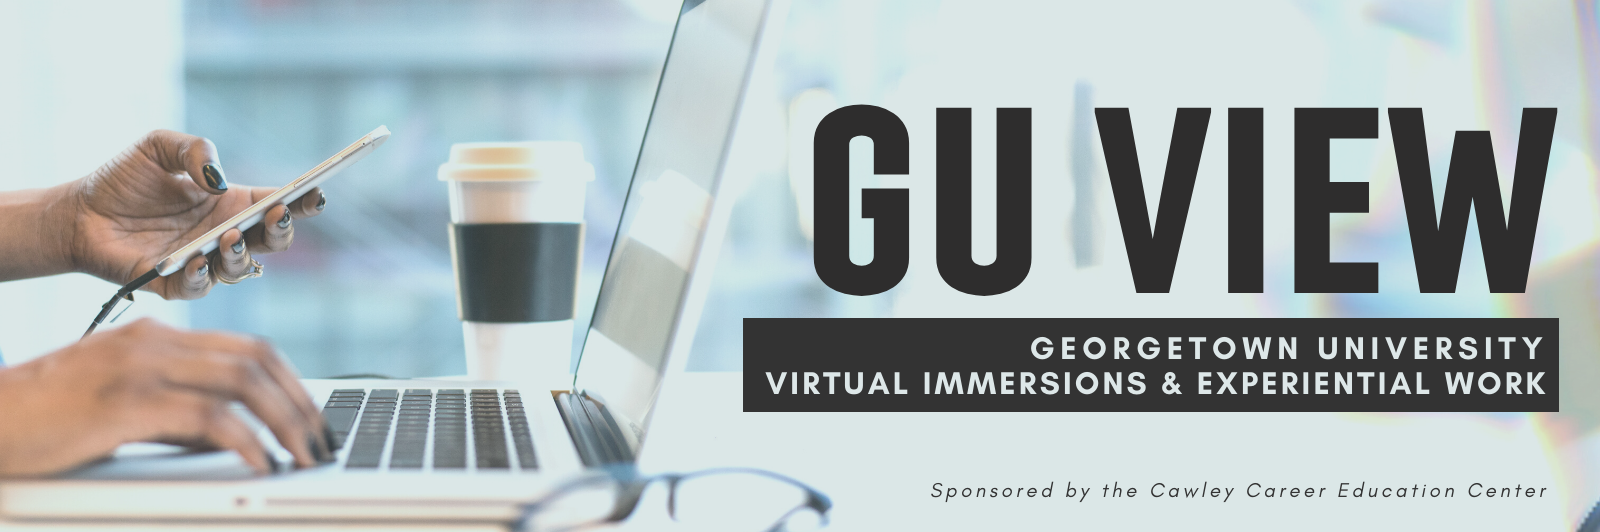 GU Virtual Immersions and Experiential Work